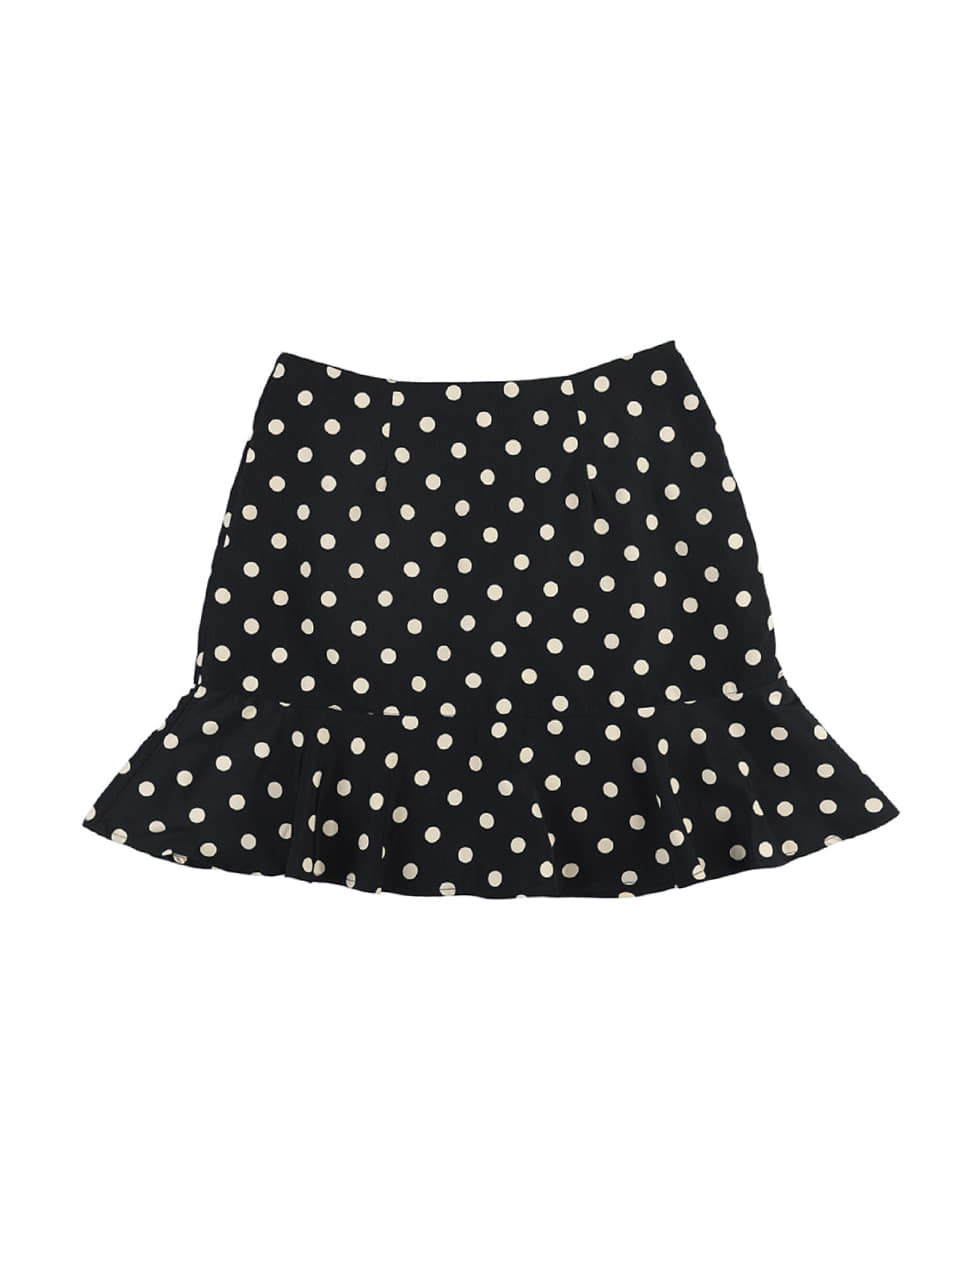 mgmg dot ruffle skirt_black